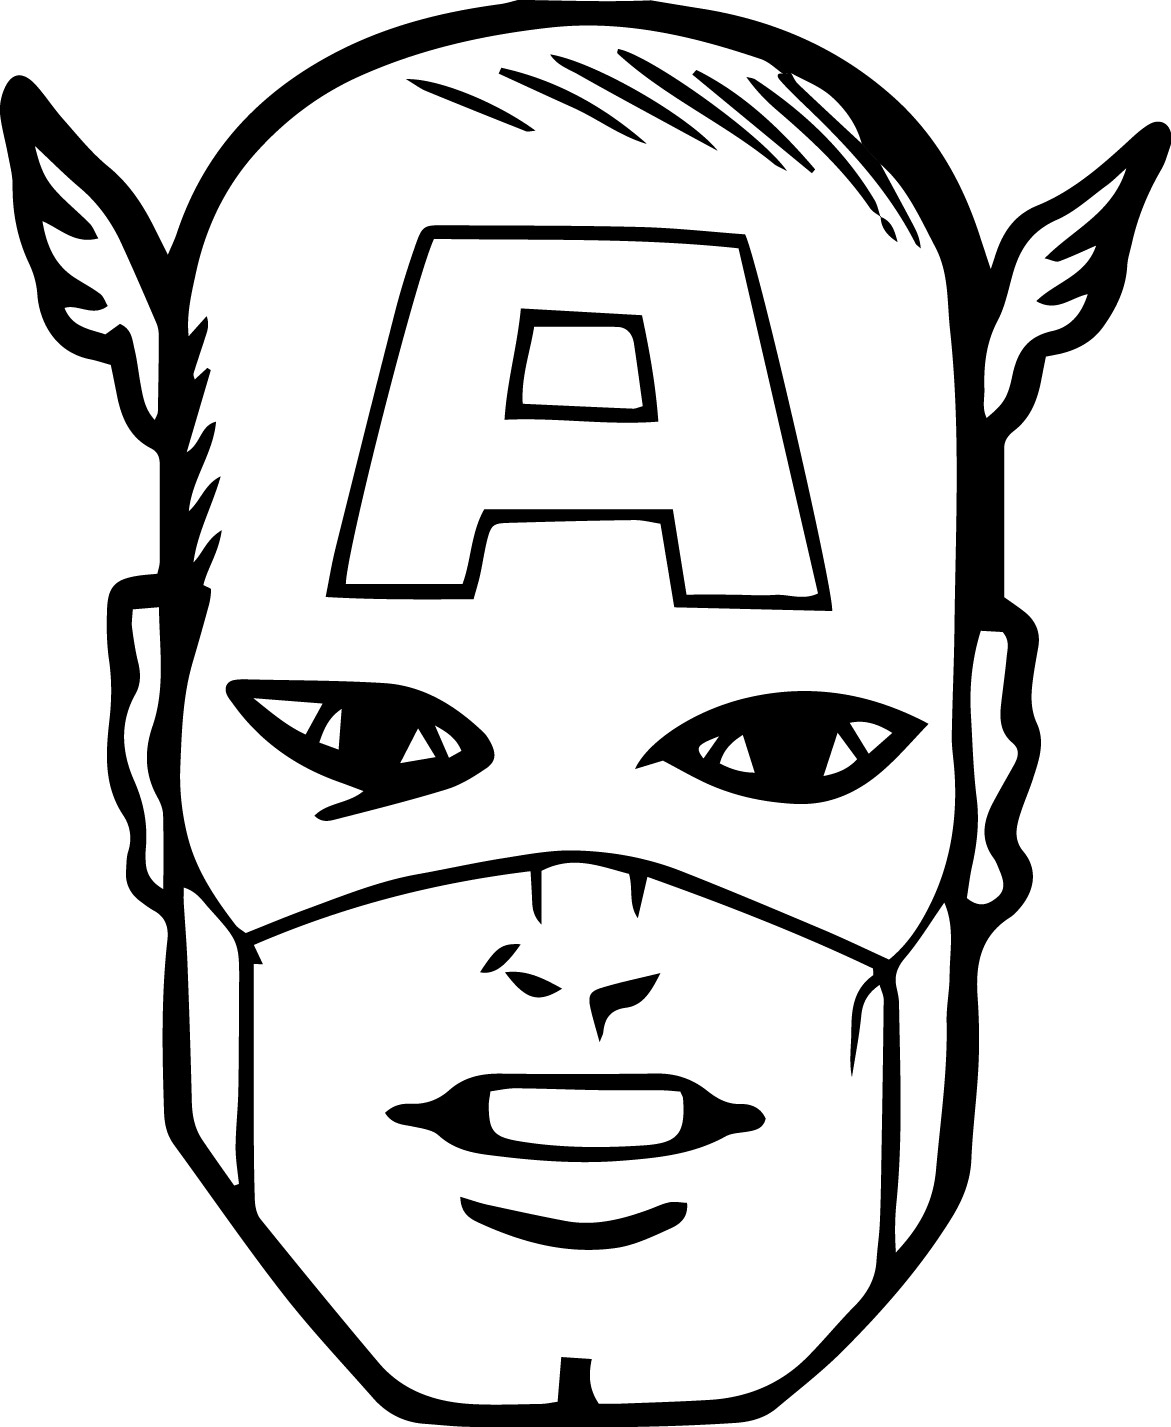 captain america shield coloring page - rosto do capitao america